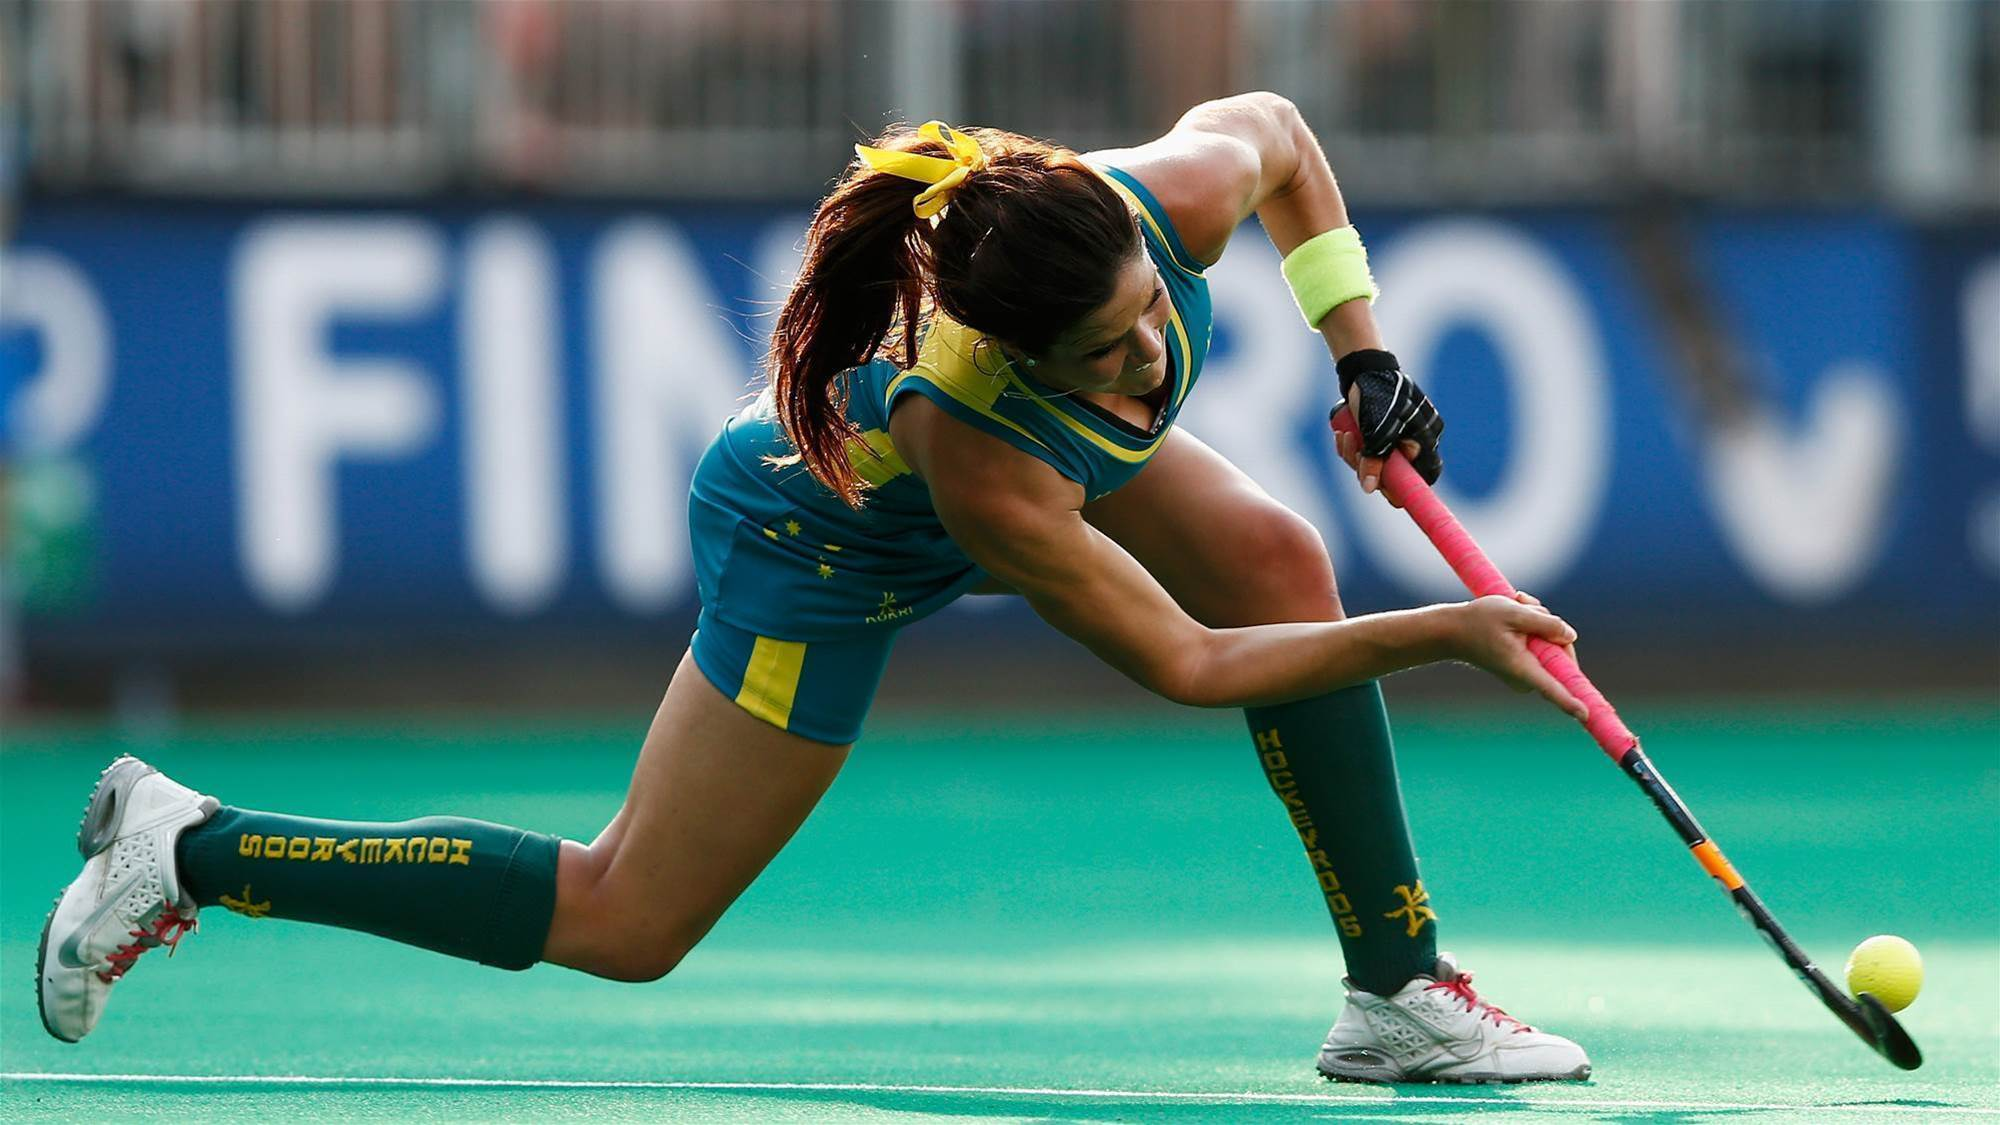 Flanagan's 'red-hot' shot for Hockeyroos return